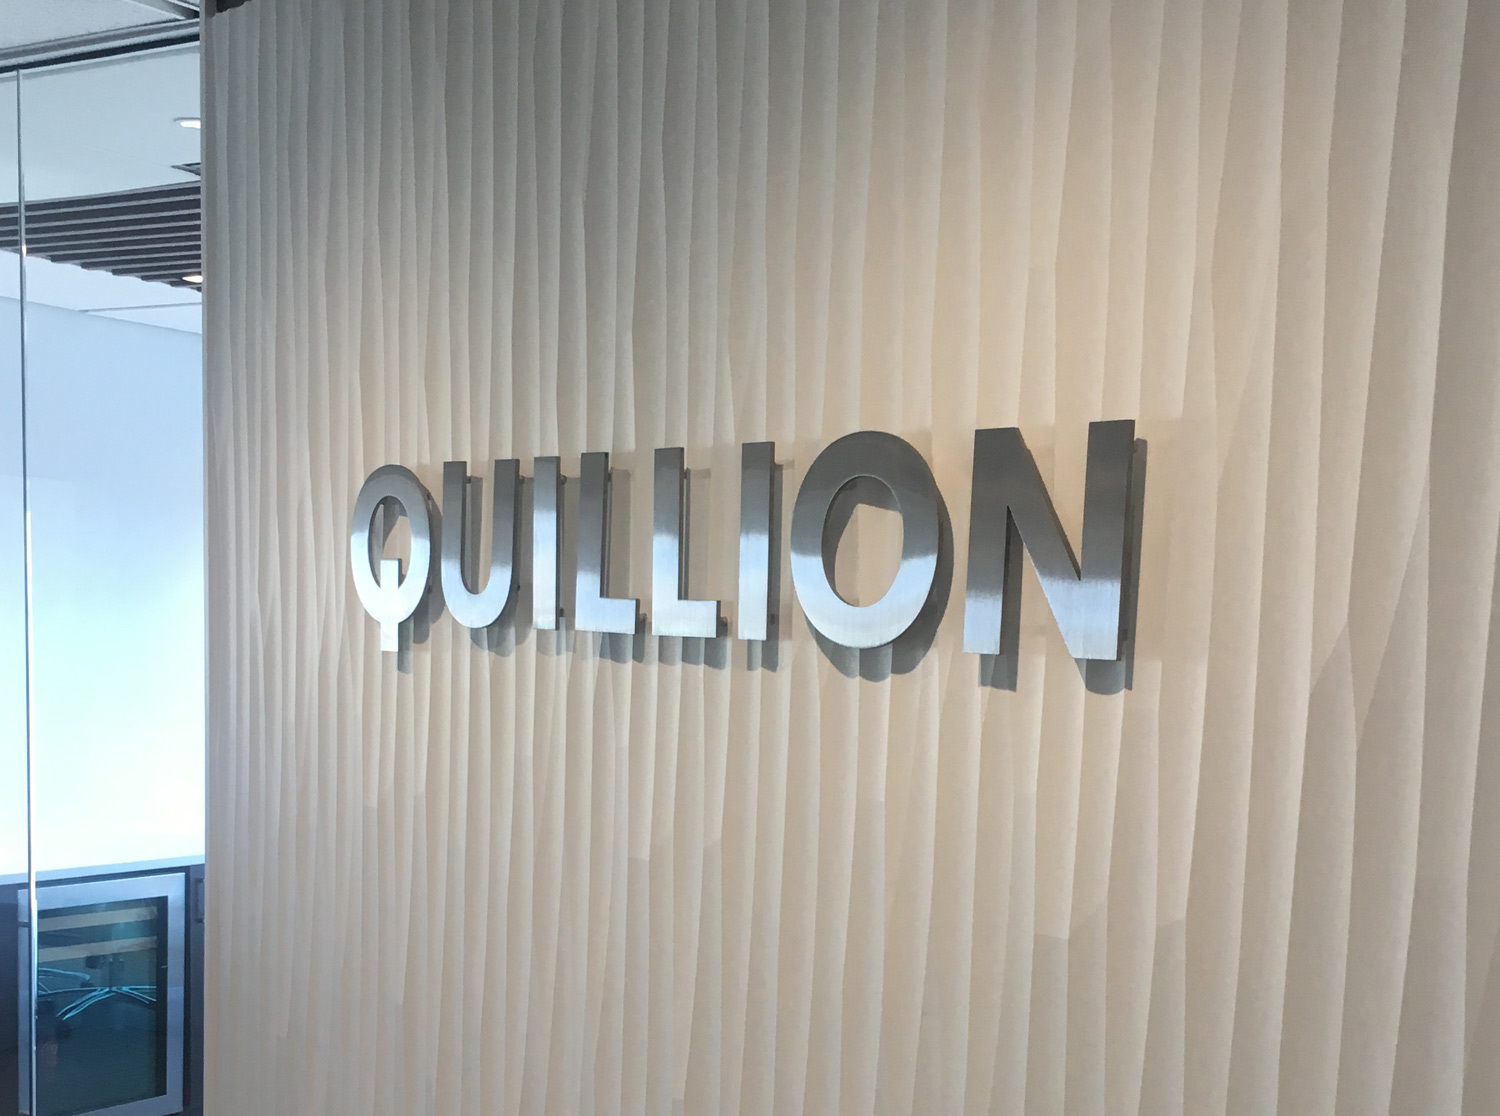 Custom-Metal-Sign-Quillion-Stainless-Steel-Individual-Letters.jpg